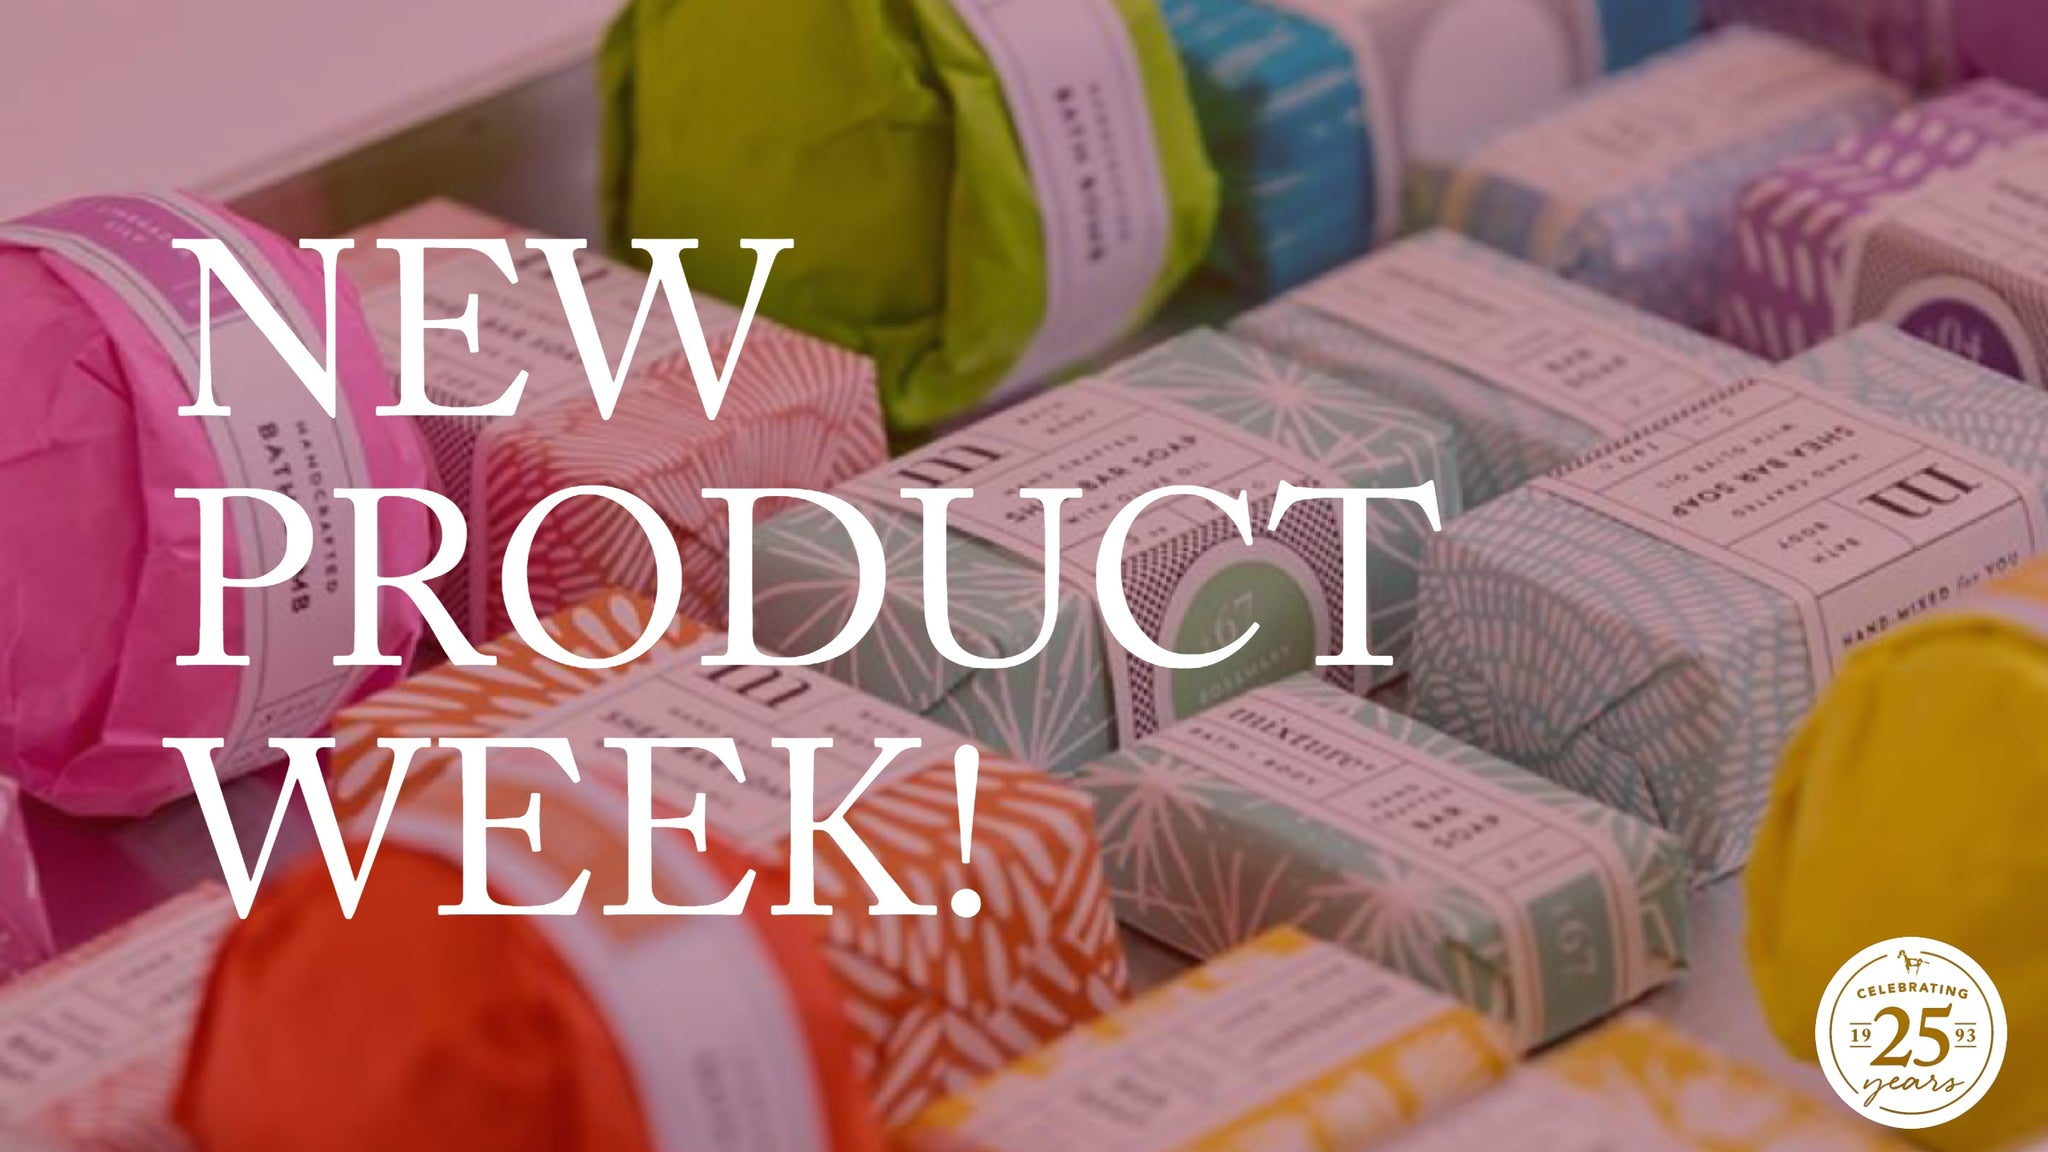 It's New Product Week at Montana Gift Corral!